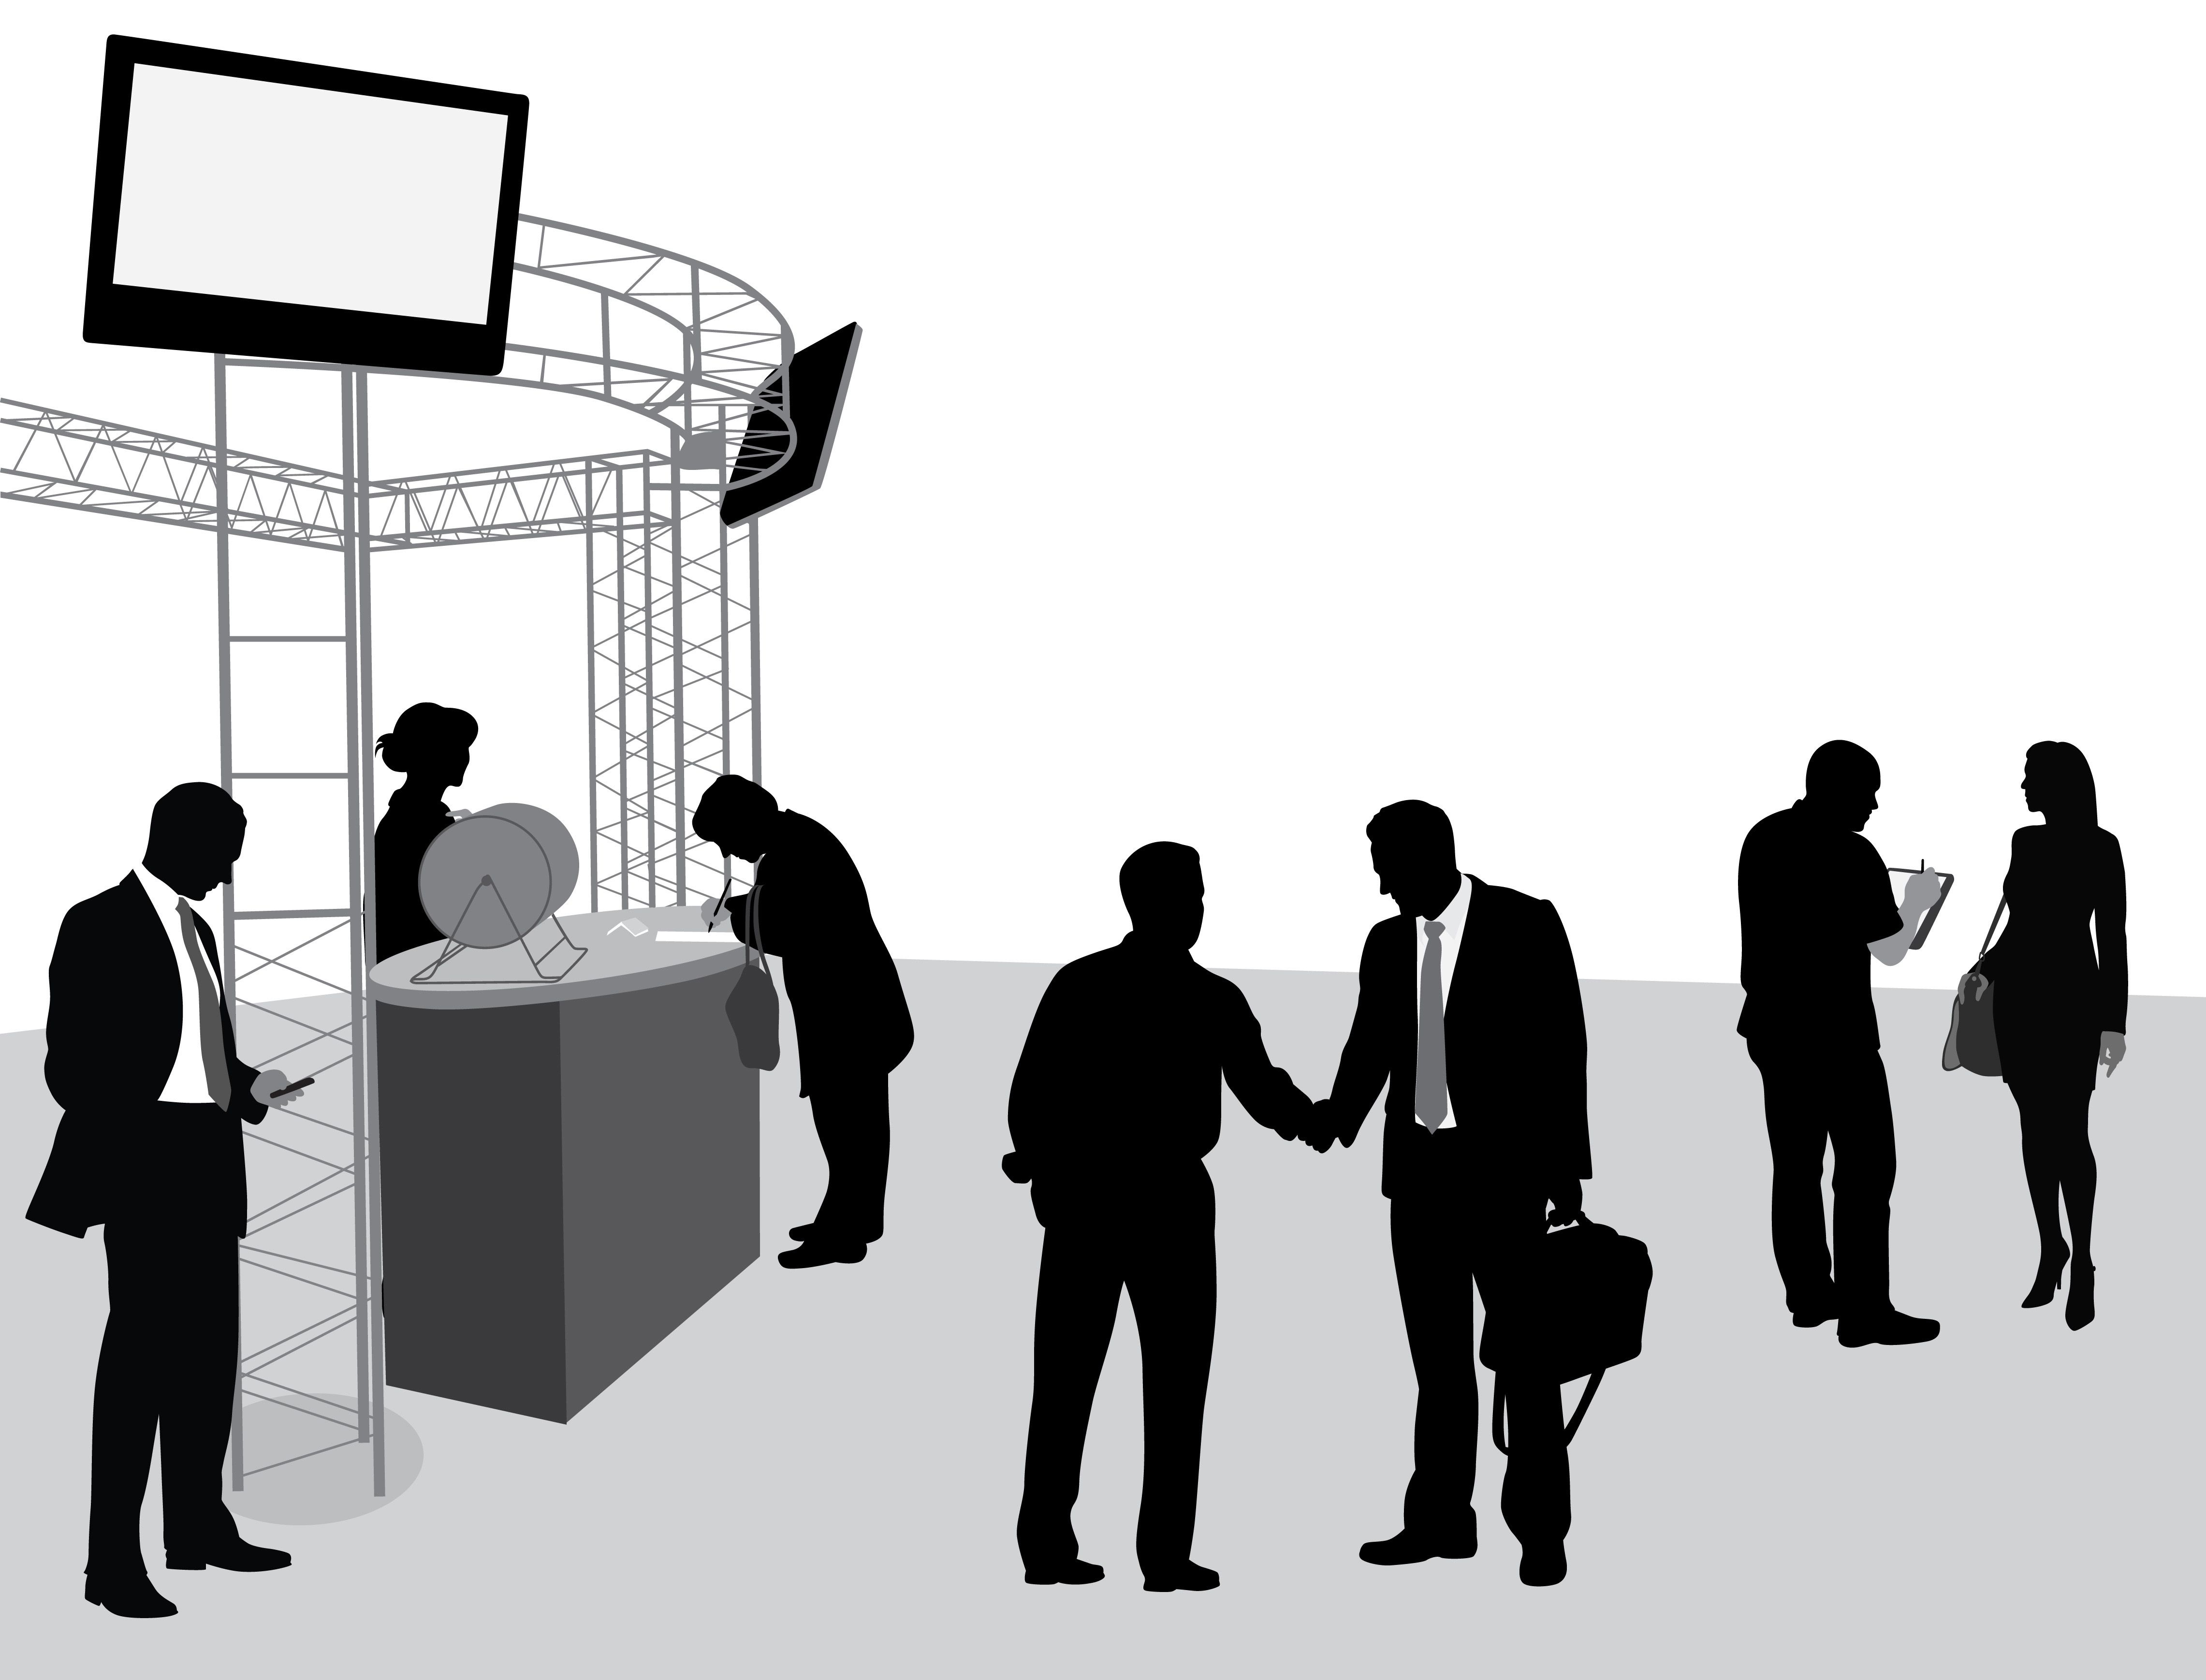 Exhibition Booth Icon : Meaningful conversation kickstarters for trade show